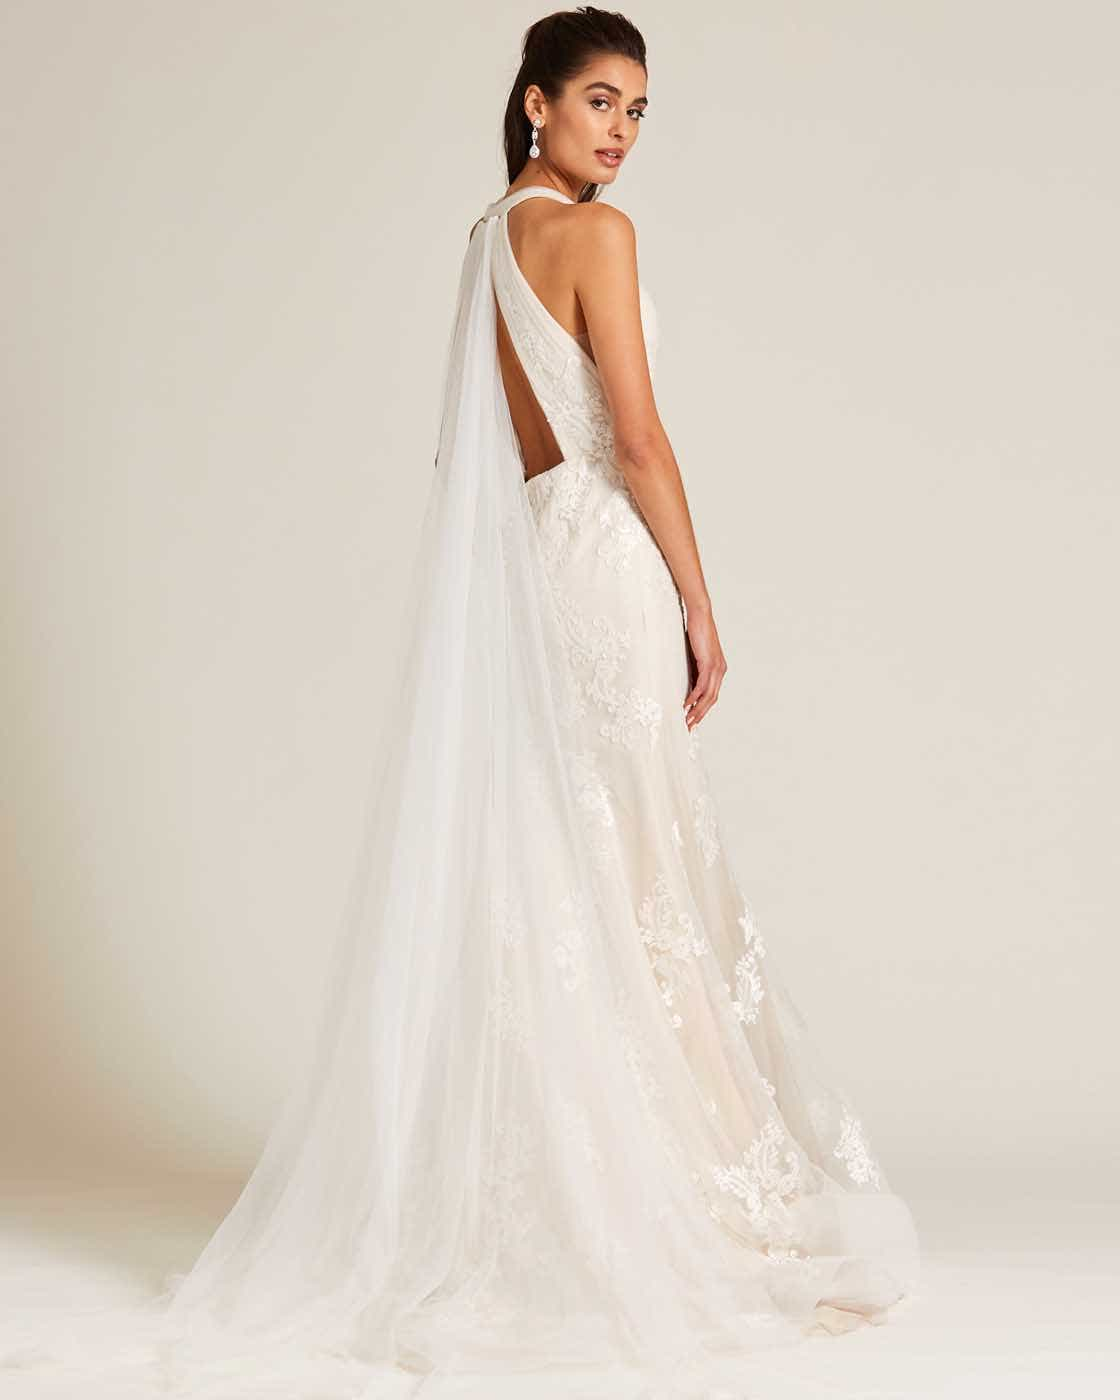 White Plunging V Neck Line Wedding Gown - Side